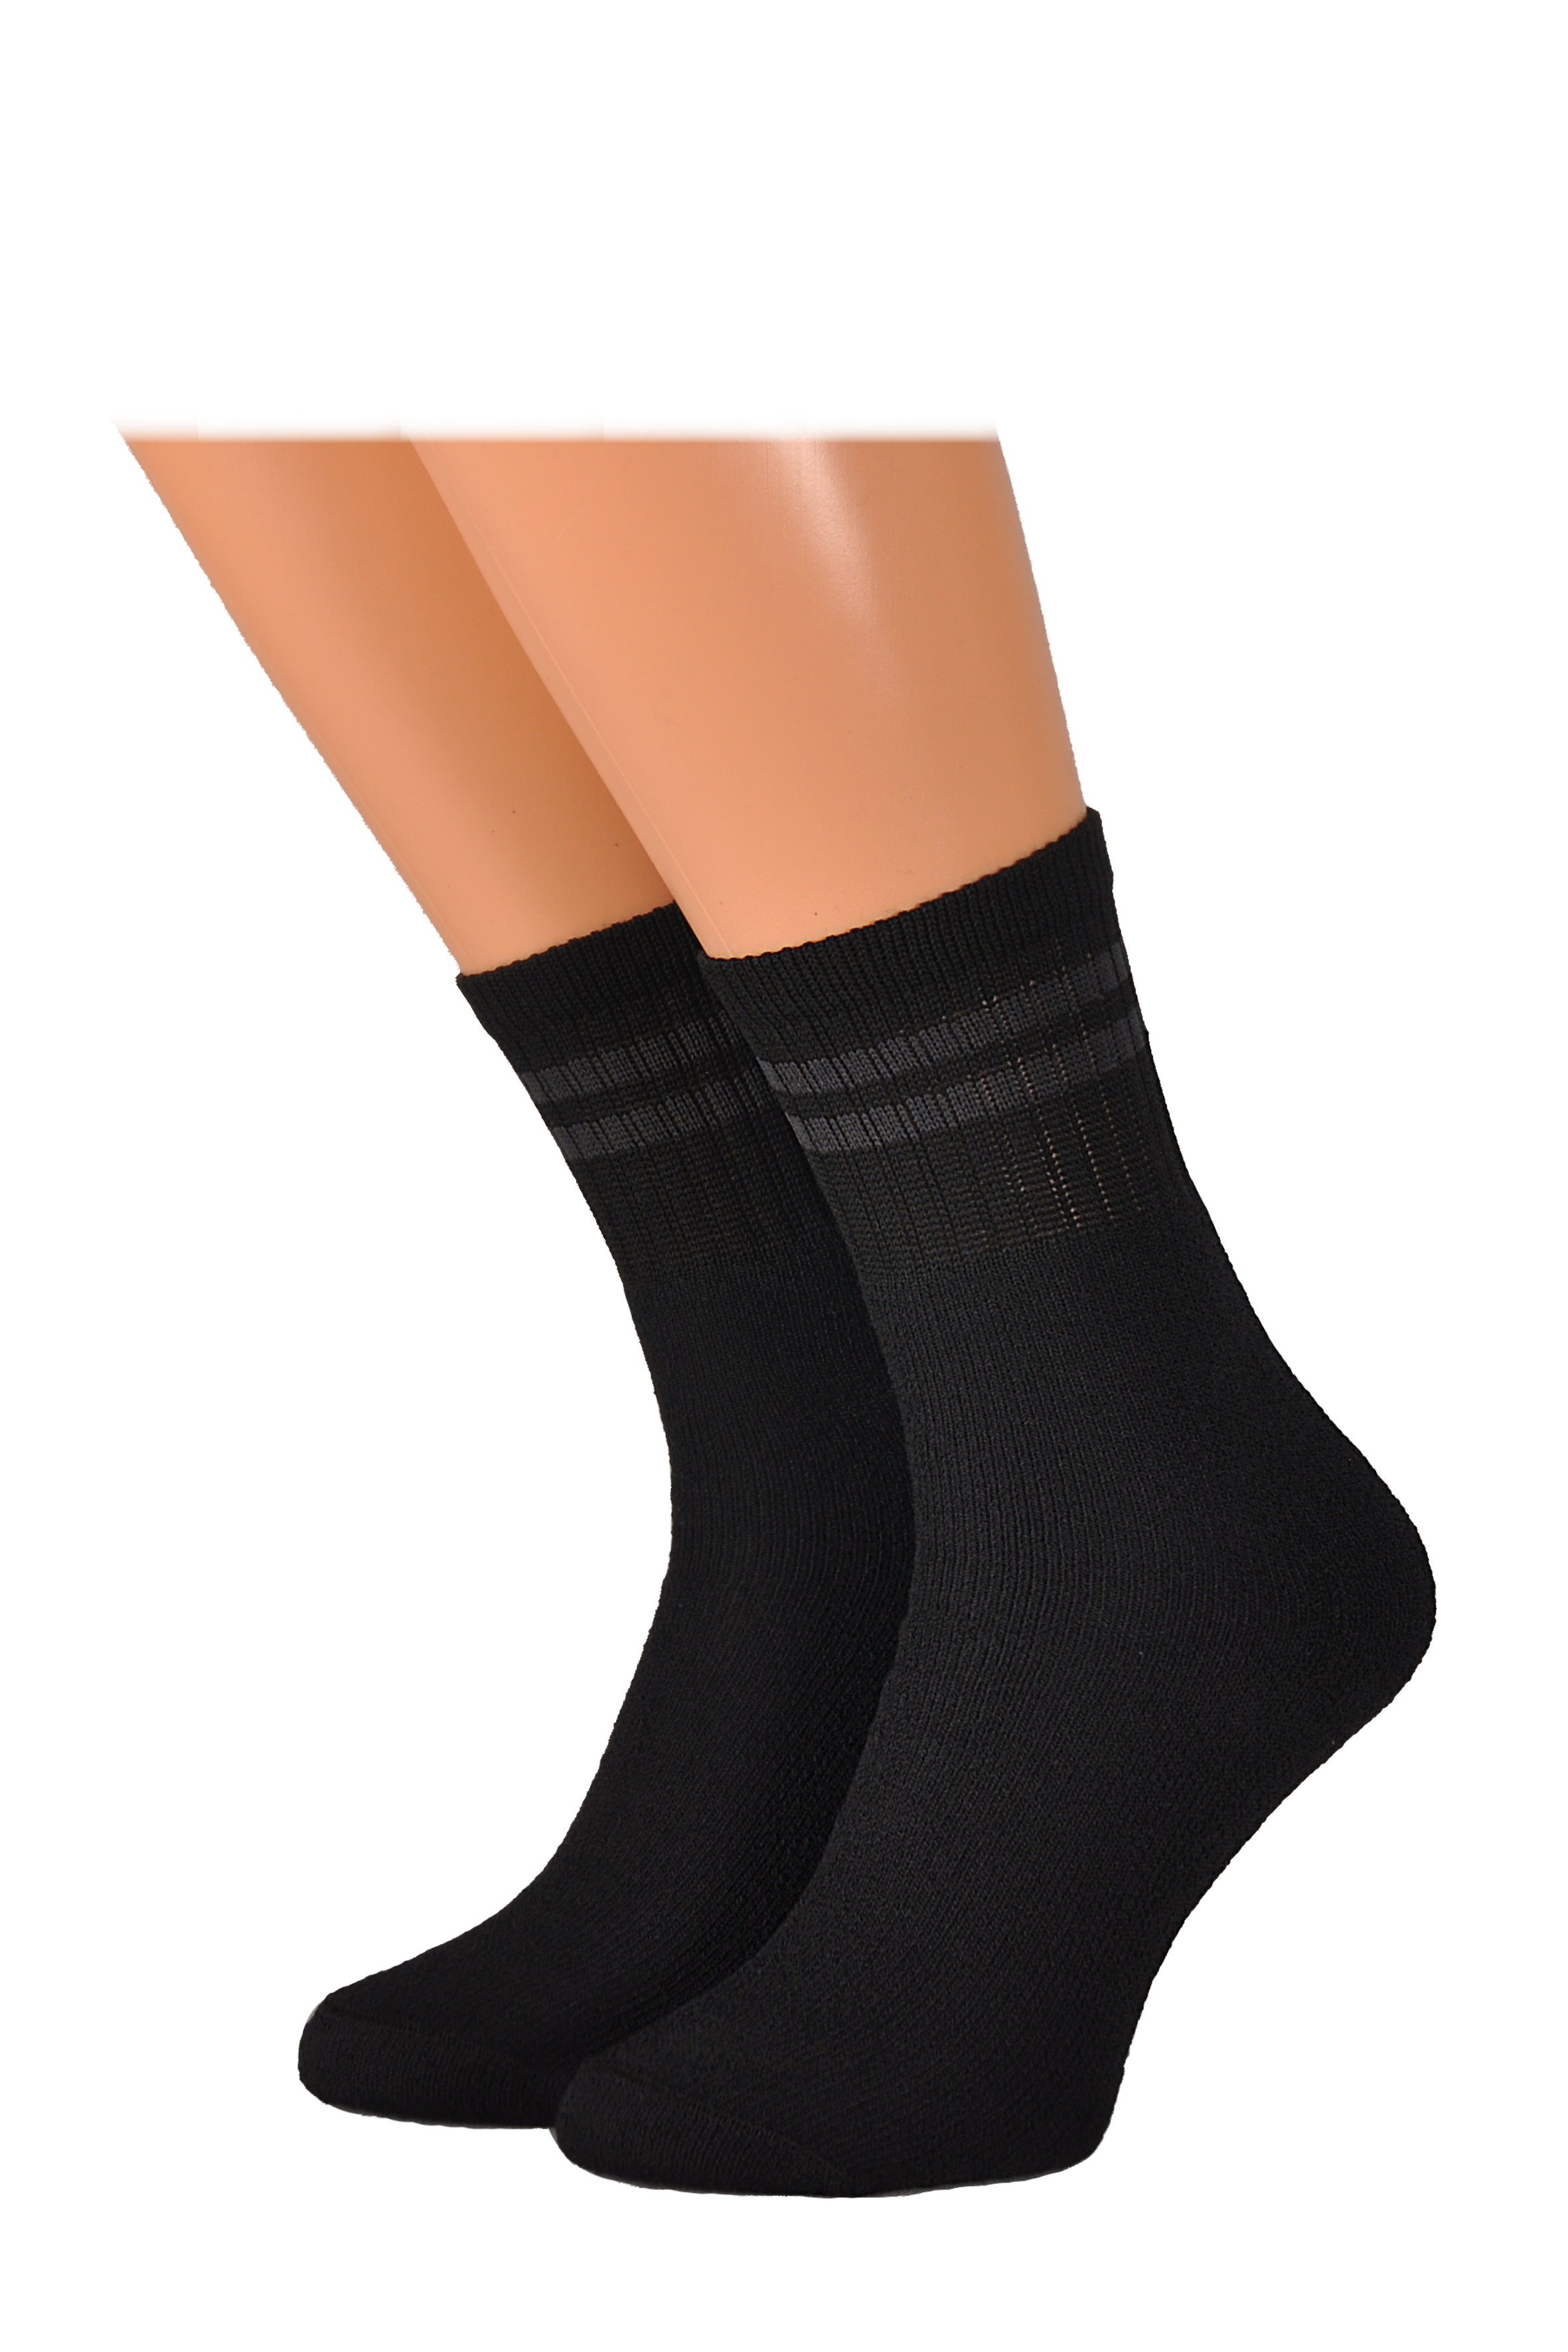 Legs clipart ankle joint. Socks in png web